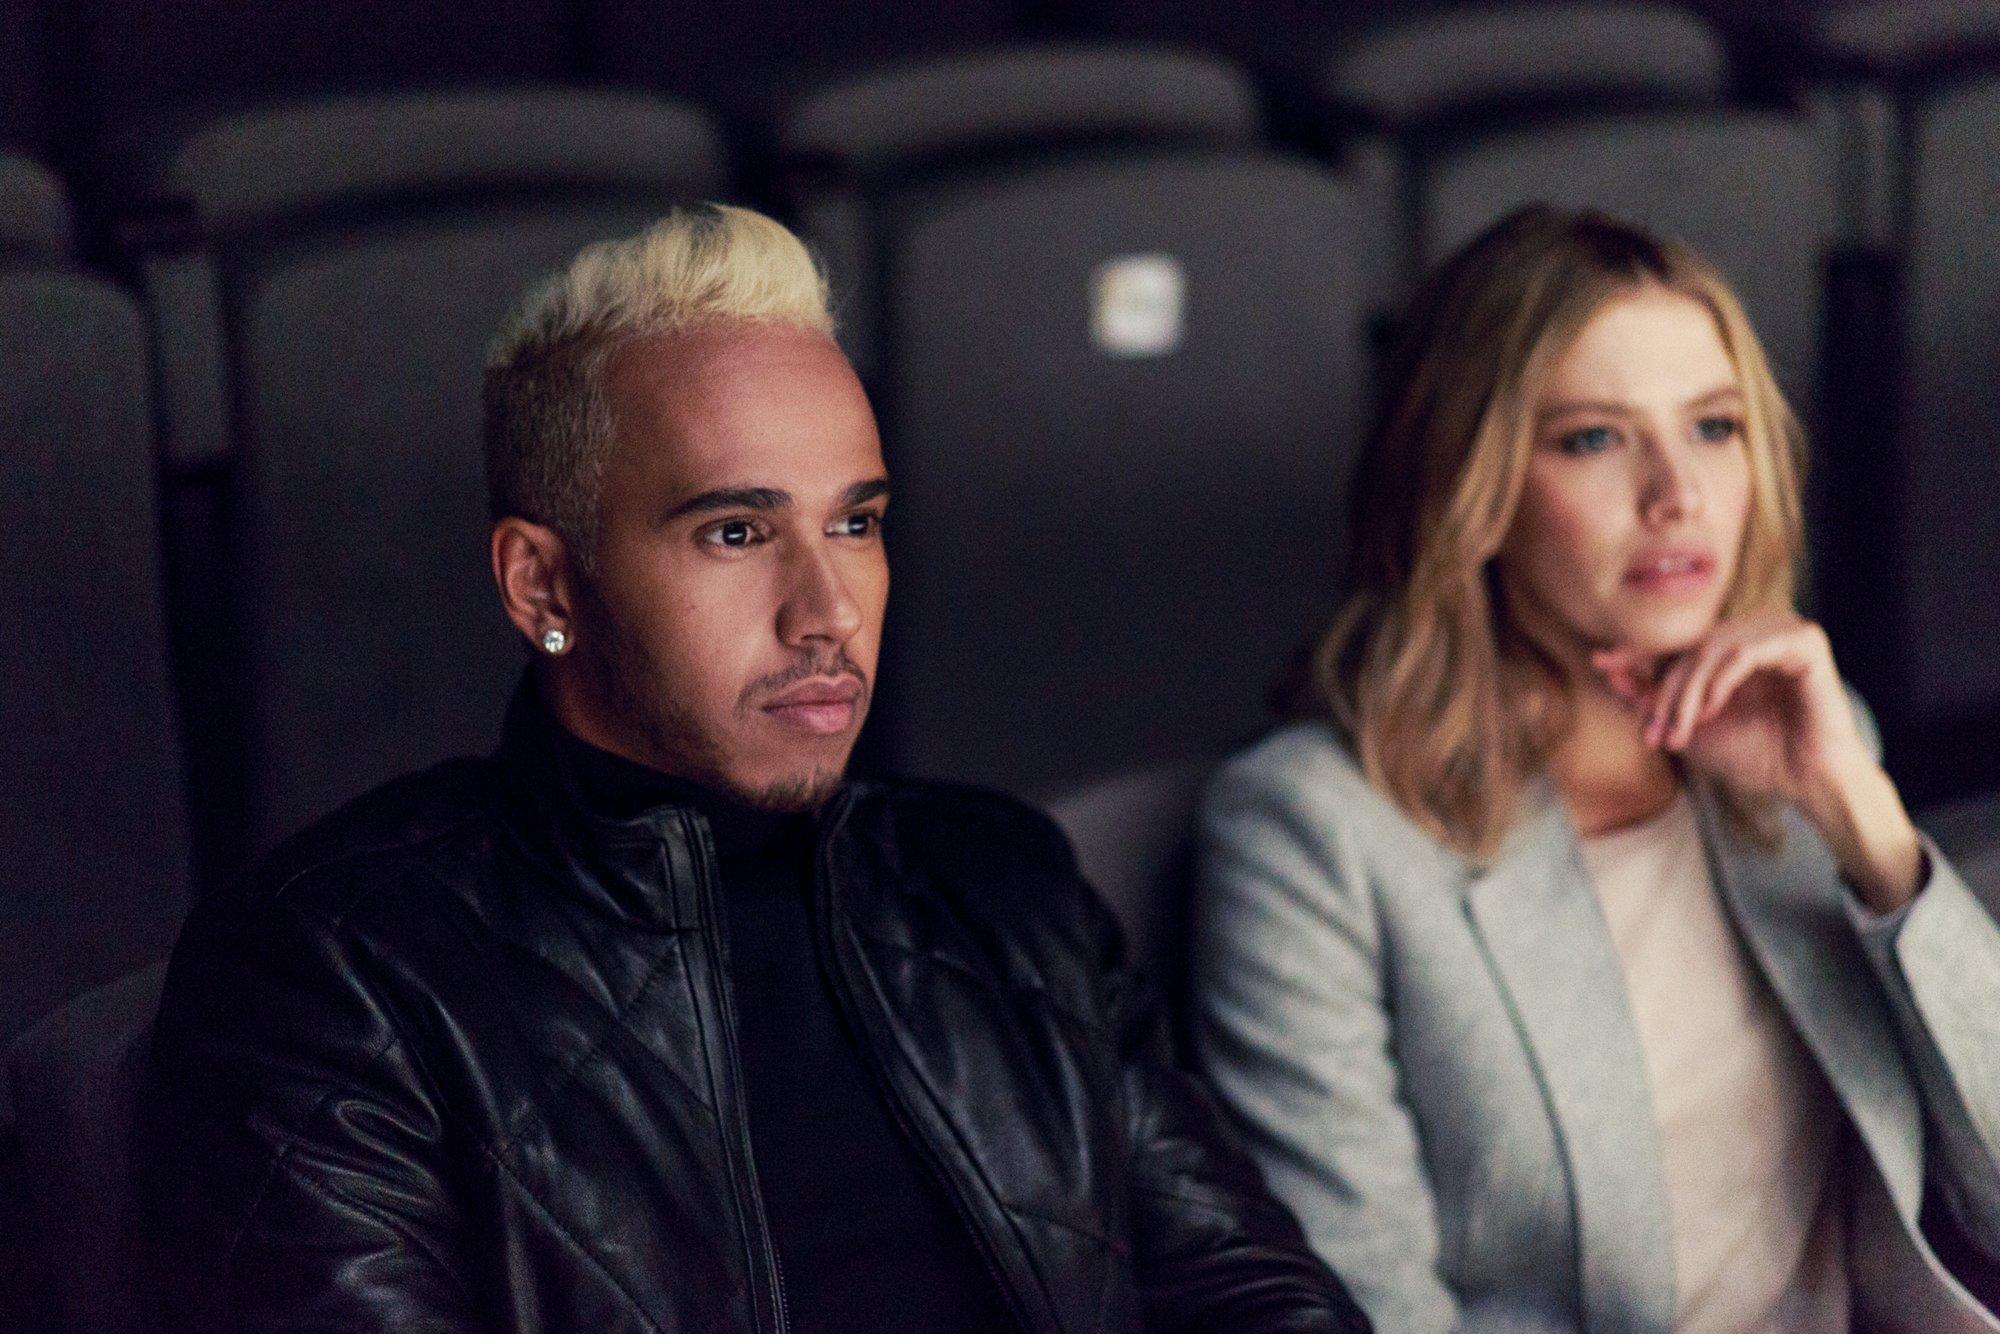 Lewis Hamilton wearing a black shirt and leather jacket by BOSS, Lena Perminova wearing a white shirt and gray blazer by BOSS